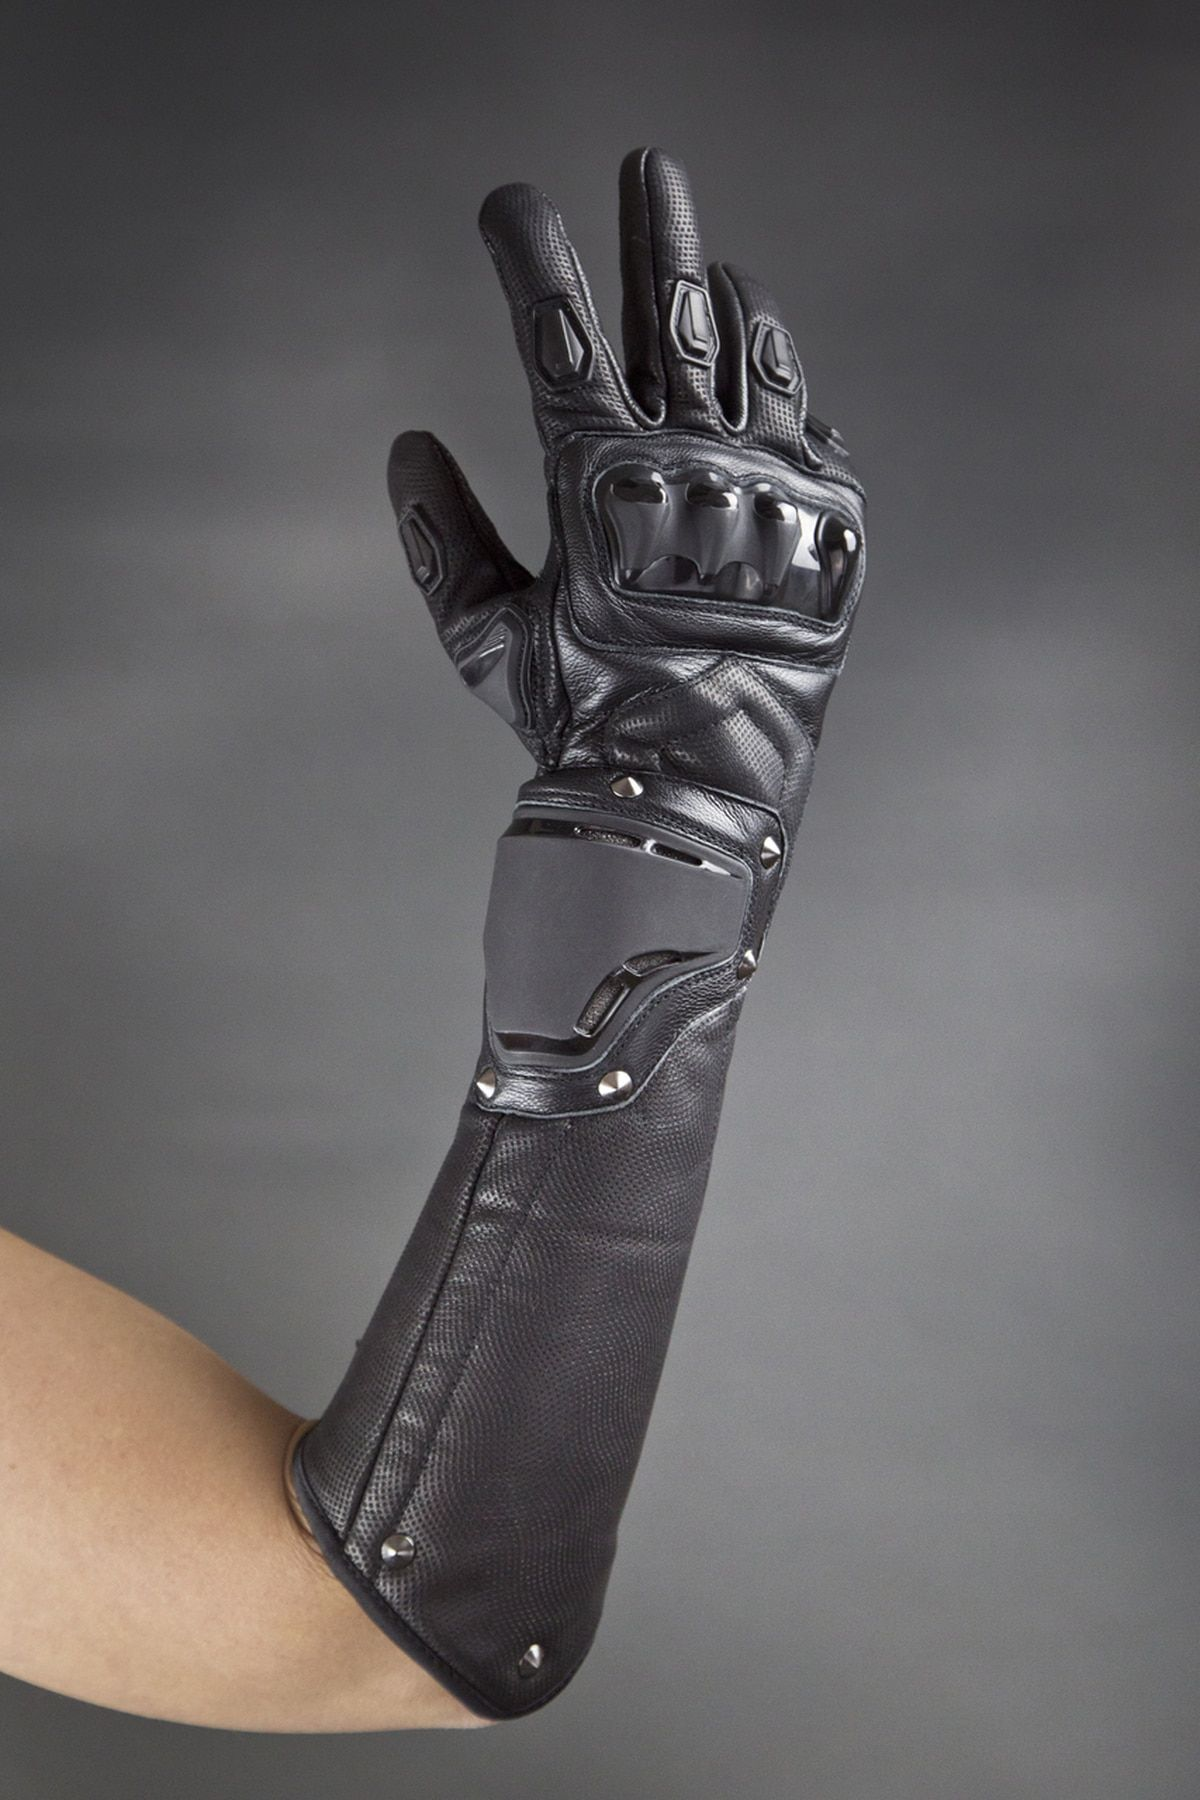 Ridgeback Armored Gauntlets Costume armour, Gloves